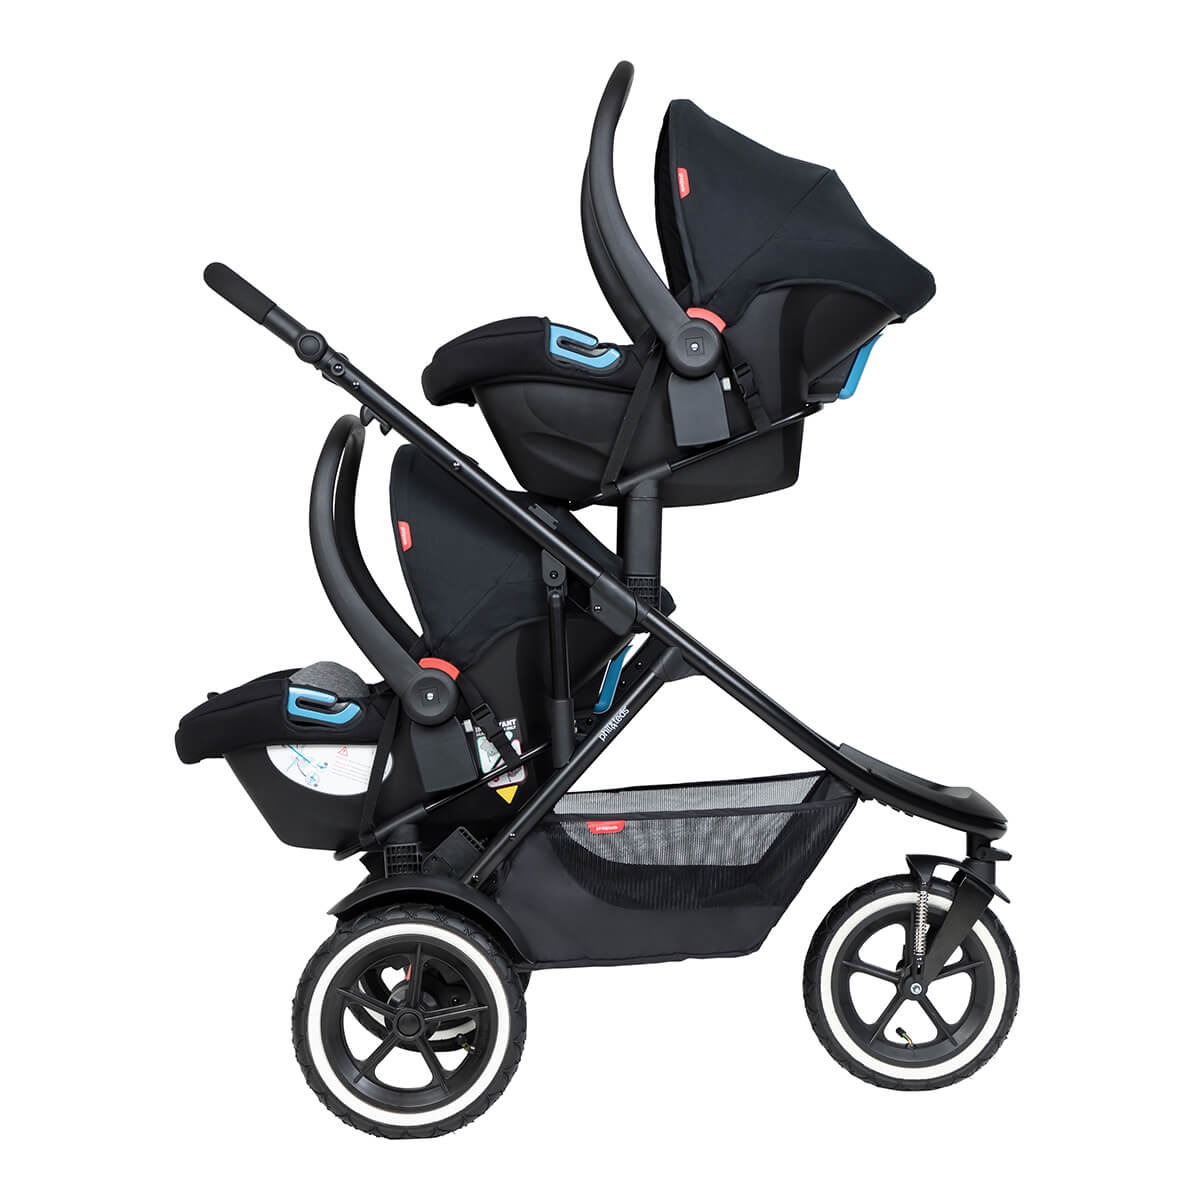 https://cdn.accentuate.io/4509867081825/19793940447402/philteds-sport-buggy-with-double-alpha-travel-system-v1626485285063.jpg?1200x1200